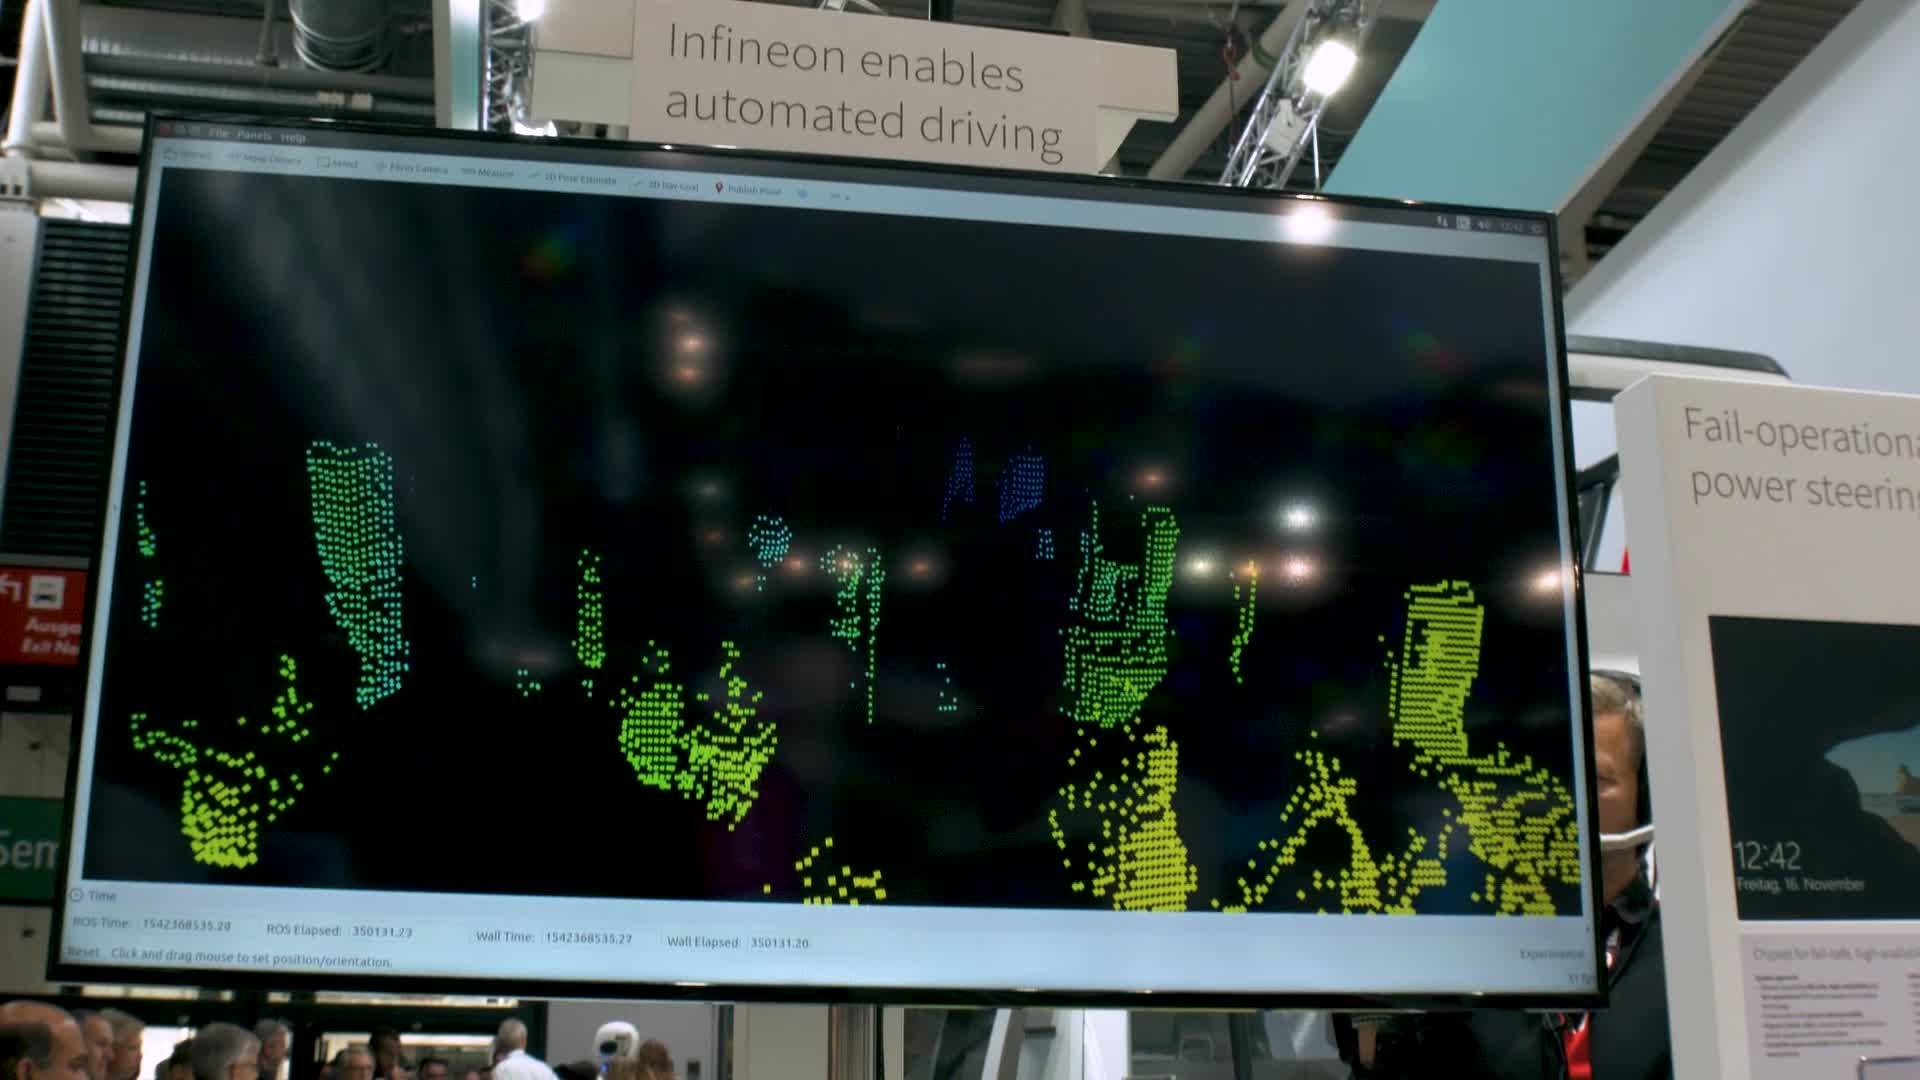 Infineon enables automated driving